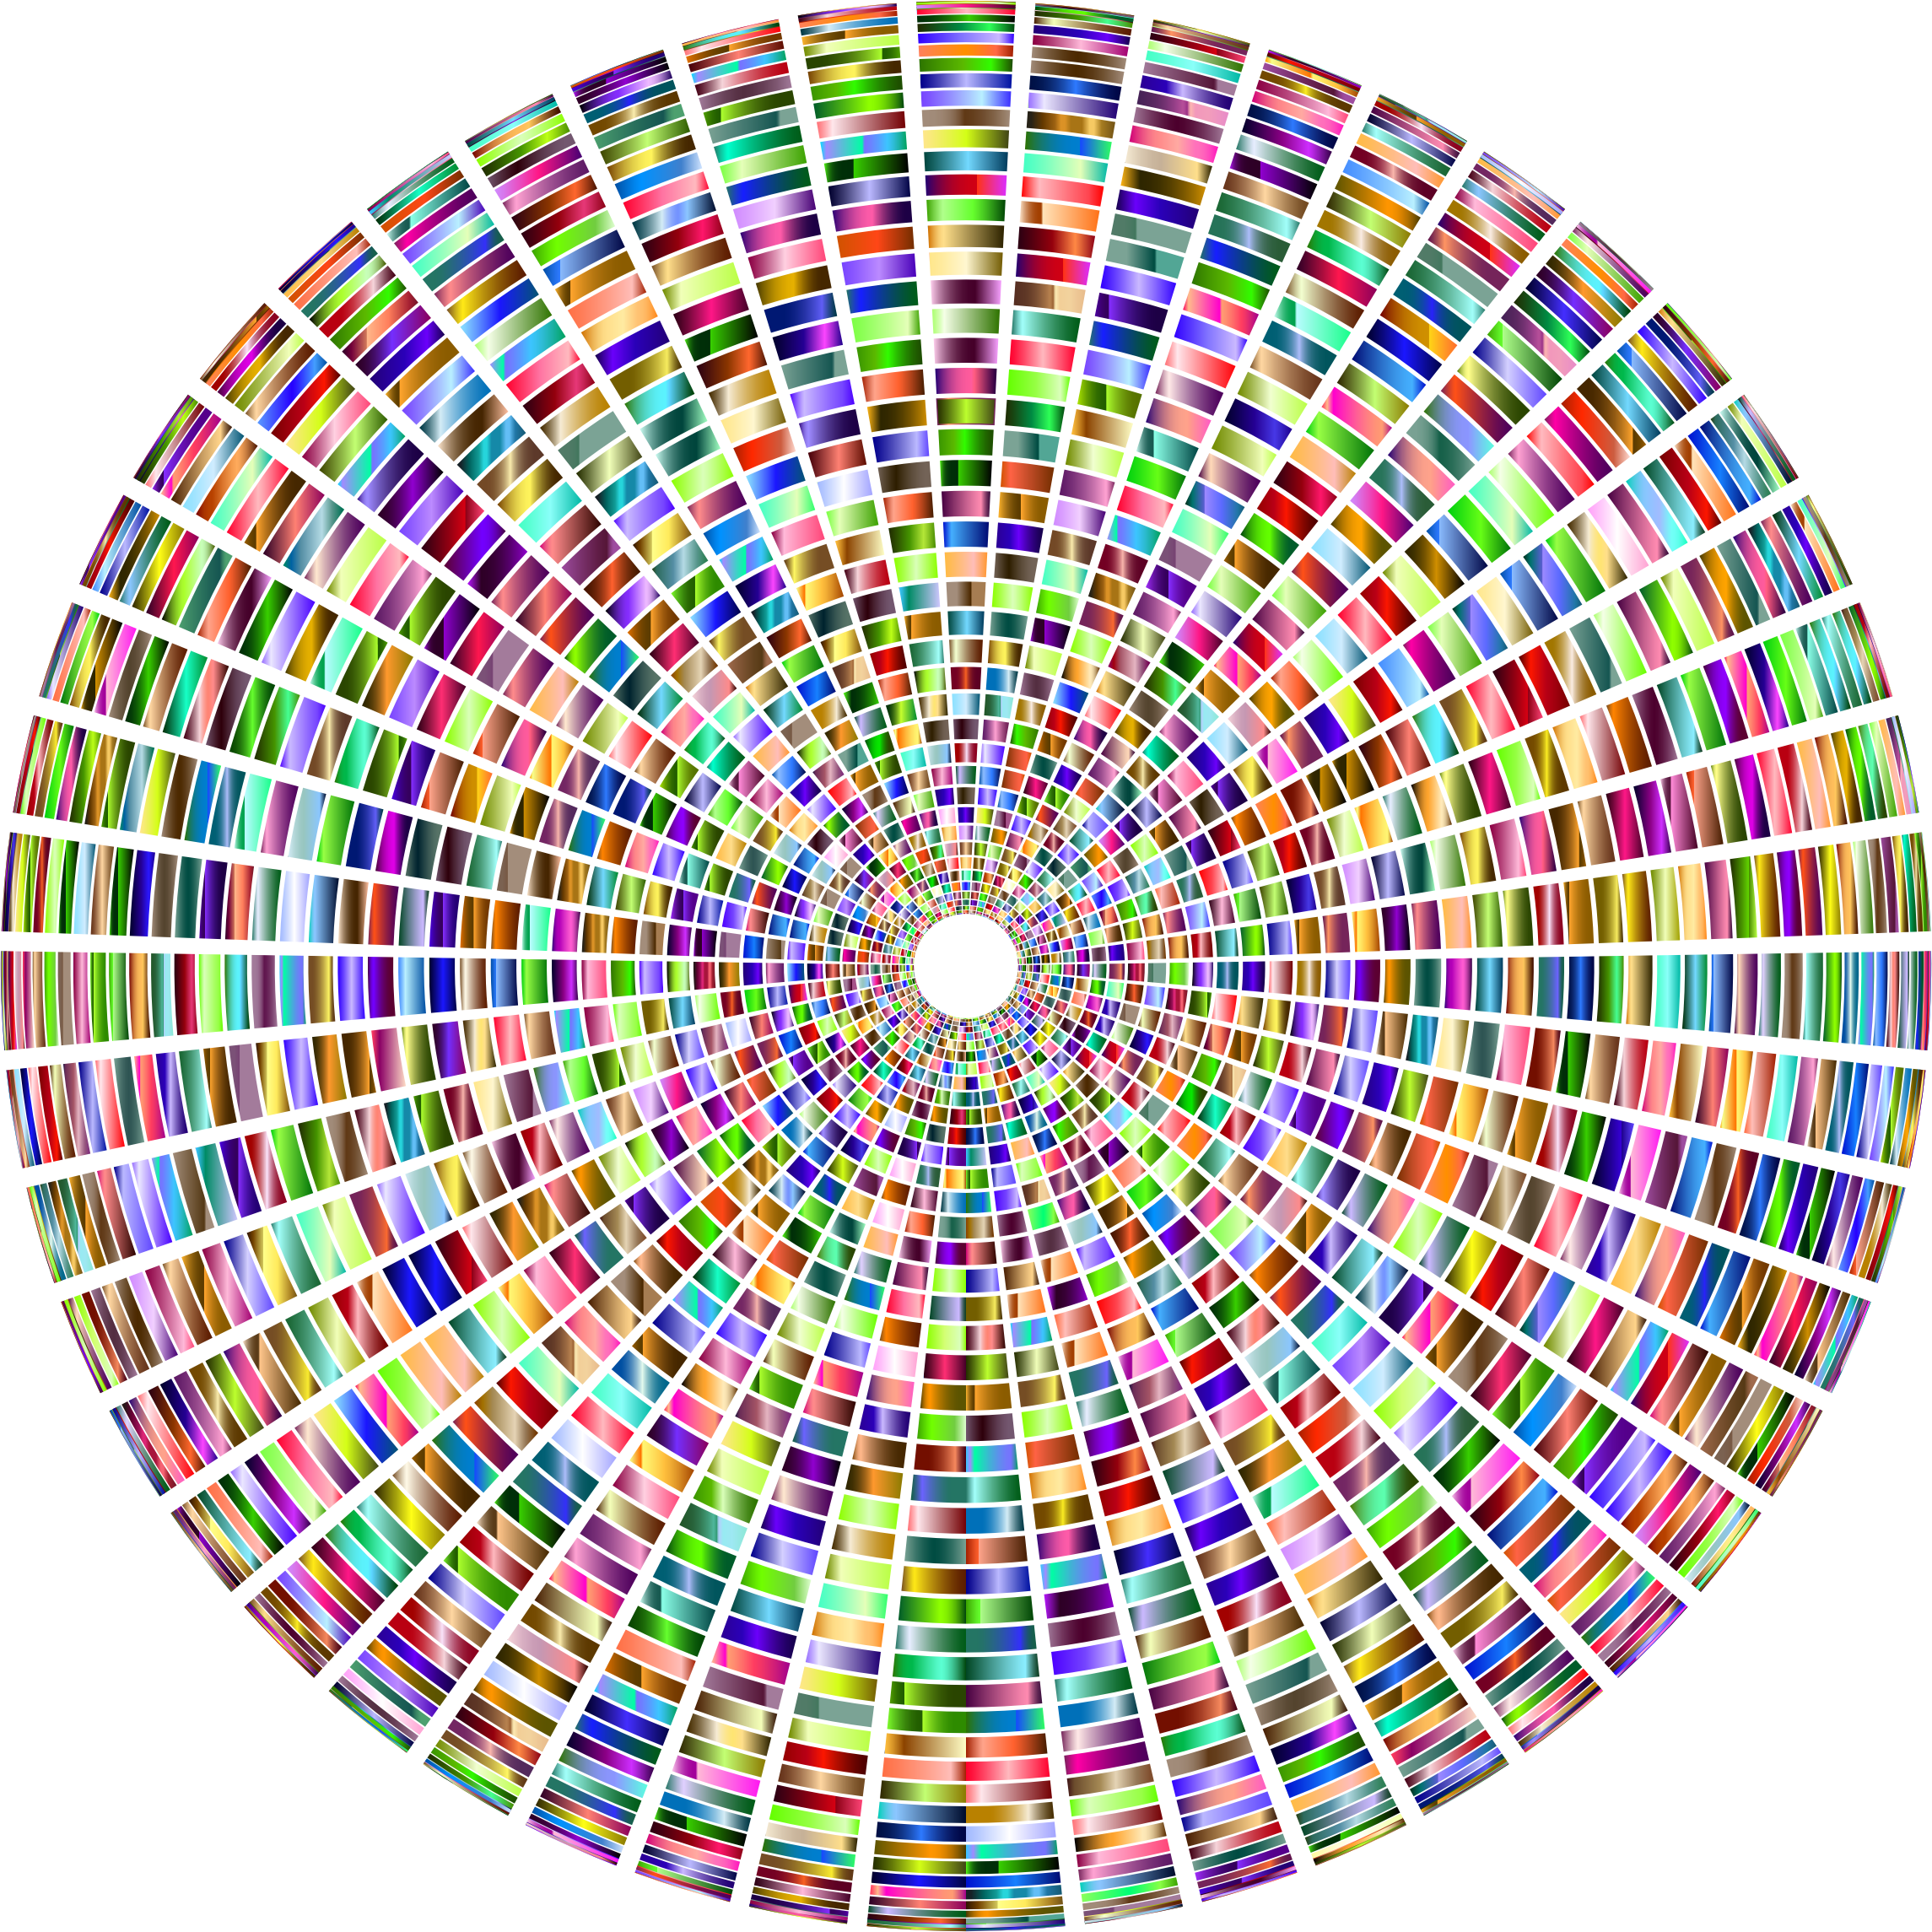 Prismatic Segmented Circle 4 by GDJ